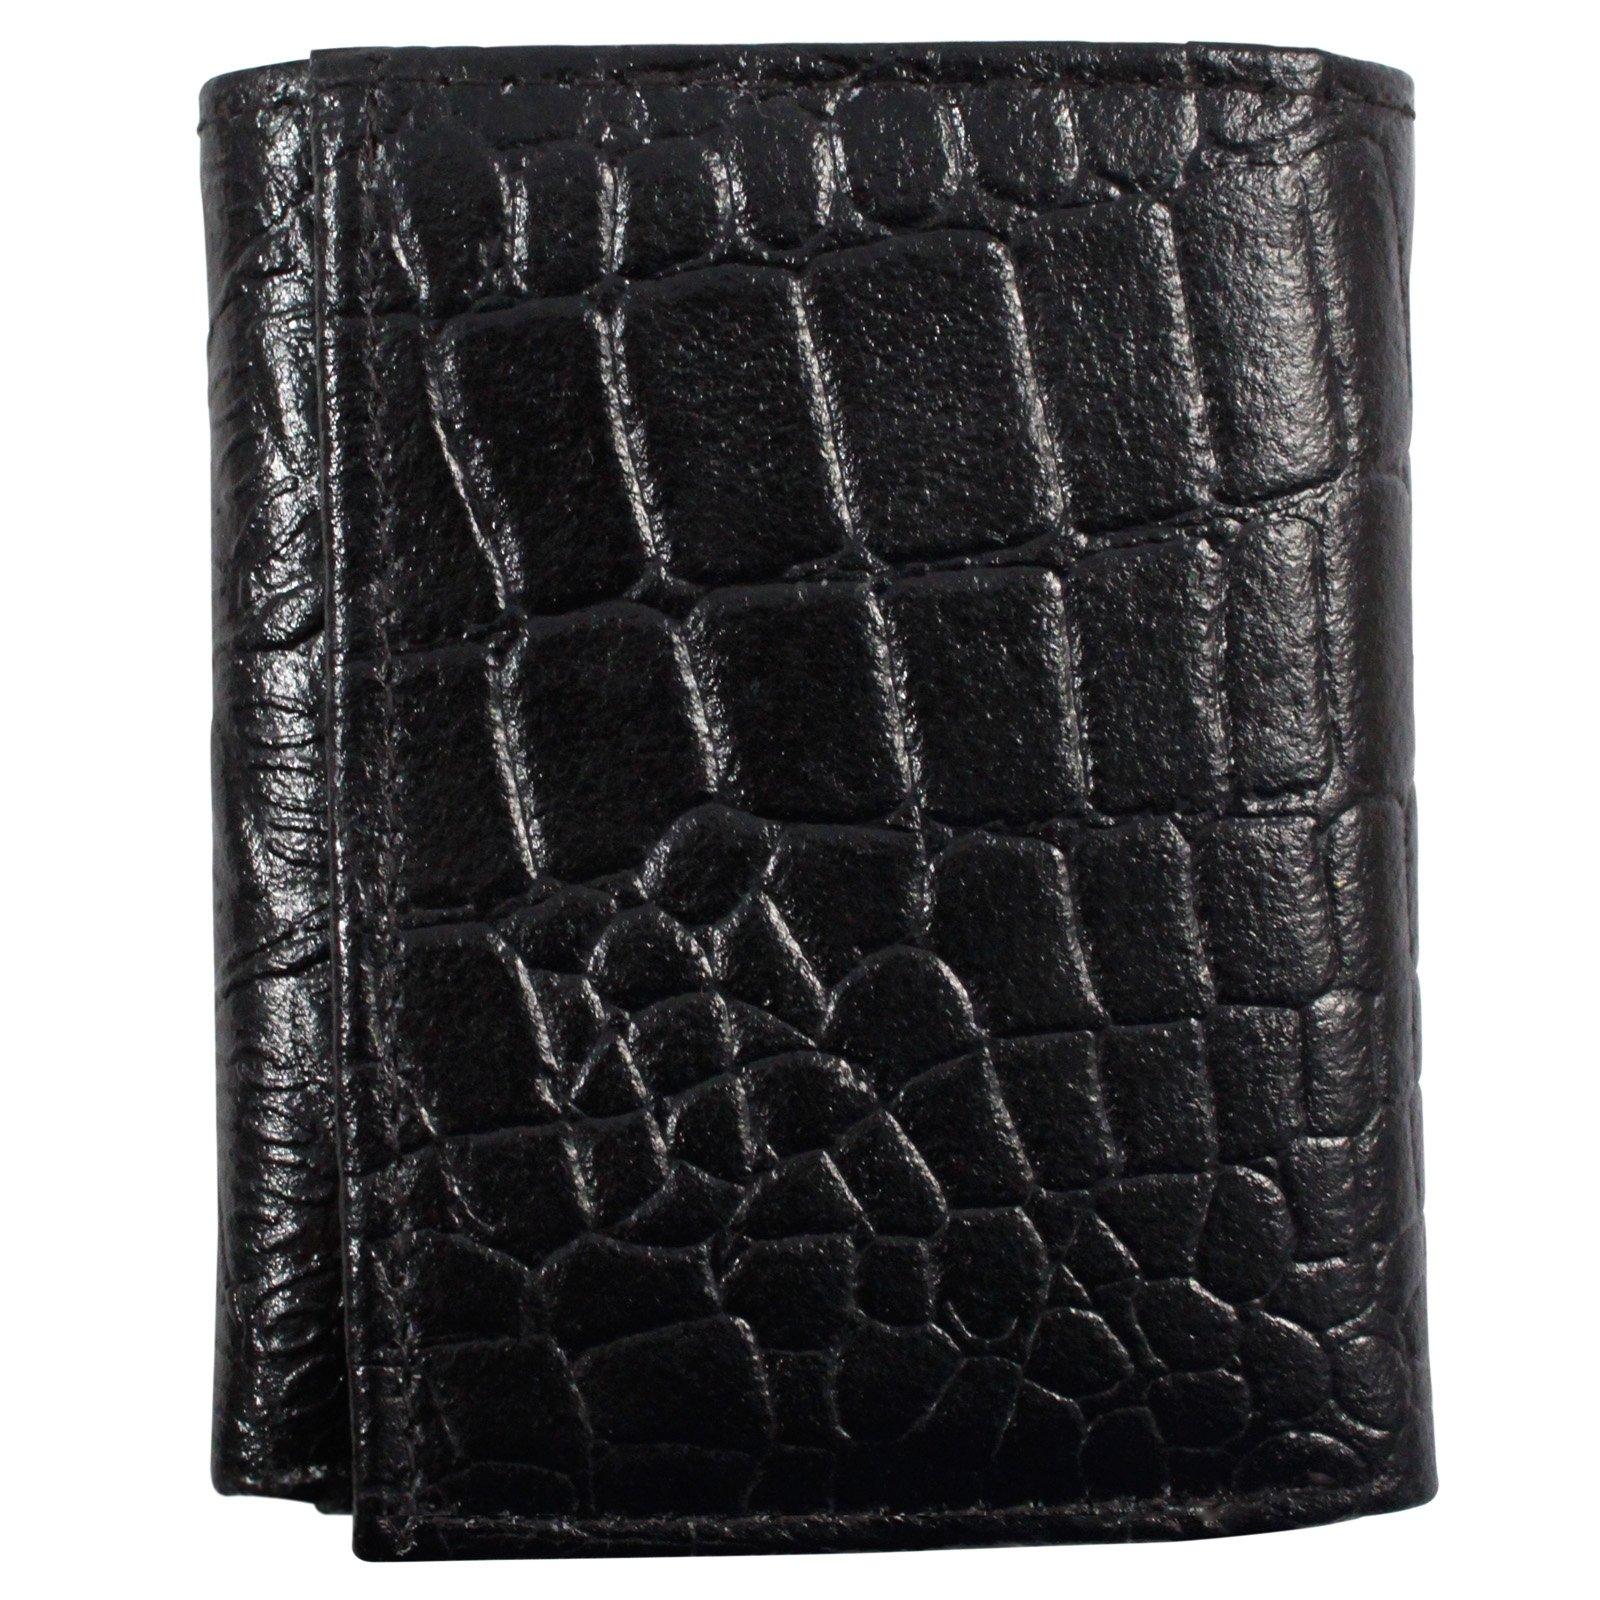 Brandon Dallas Genuine Handcrafted Leather Wallet - Black Crocodile